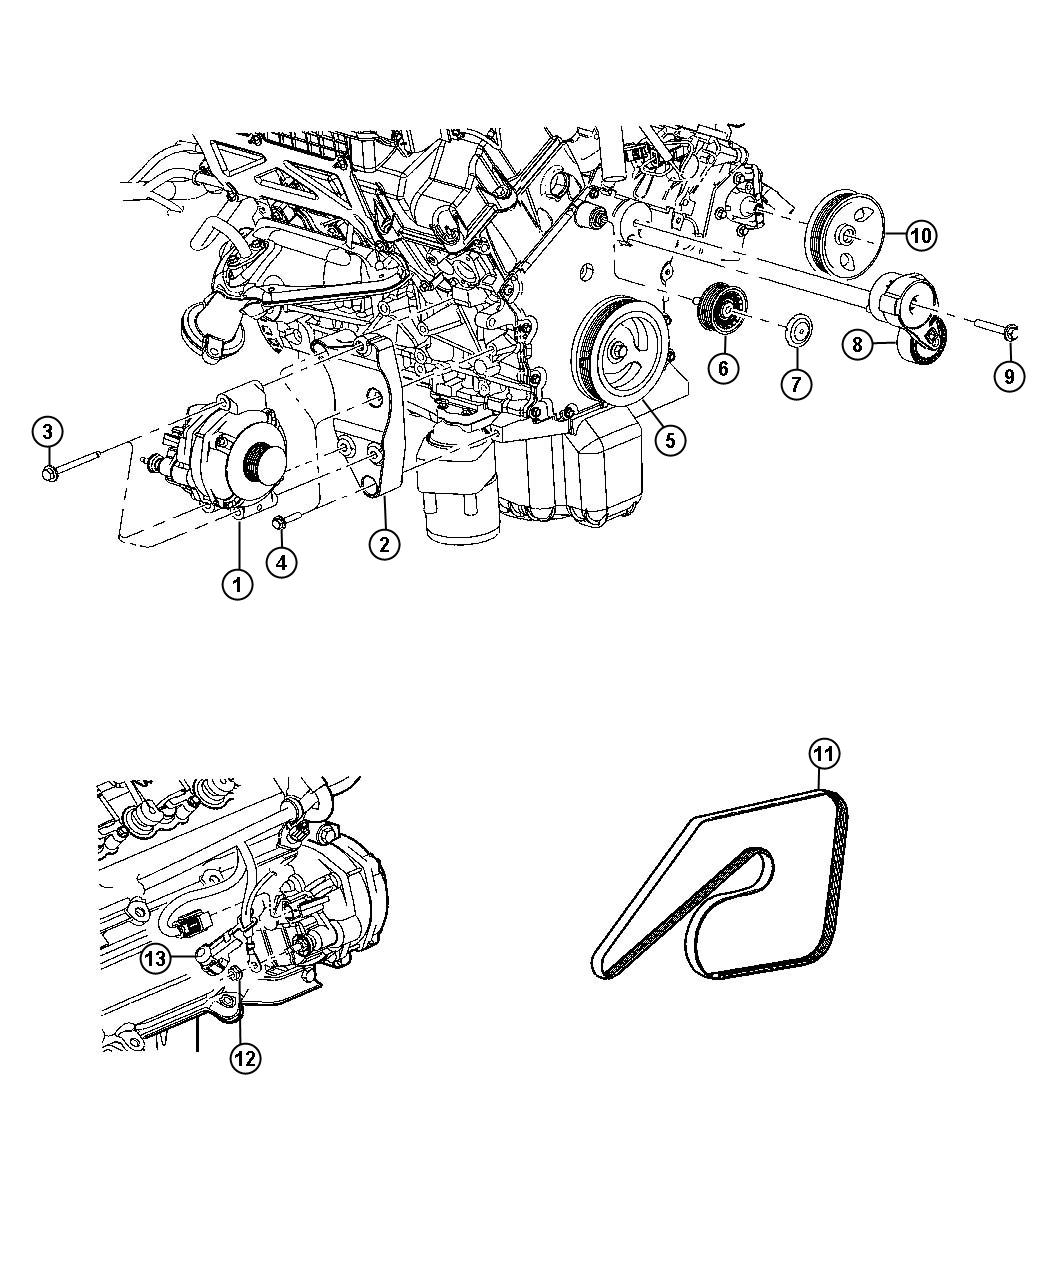 Diagram Dodge Charger 2 7 Engine Diagram